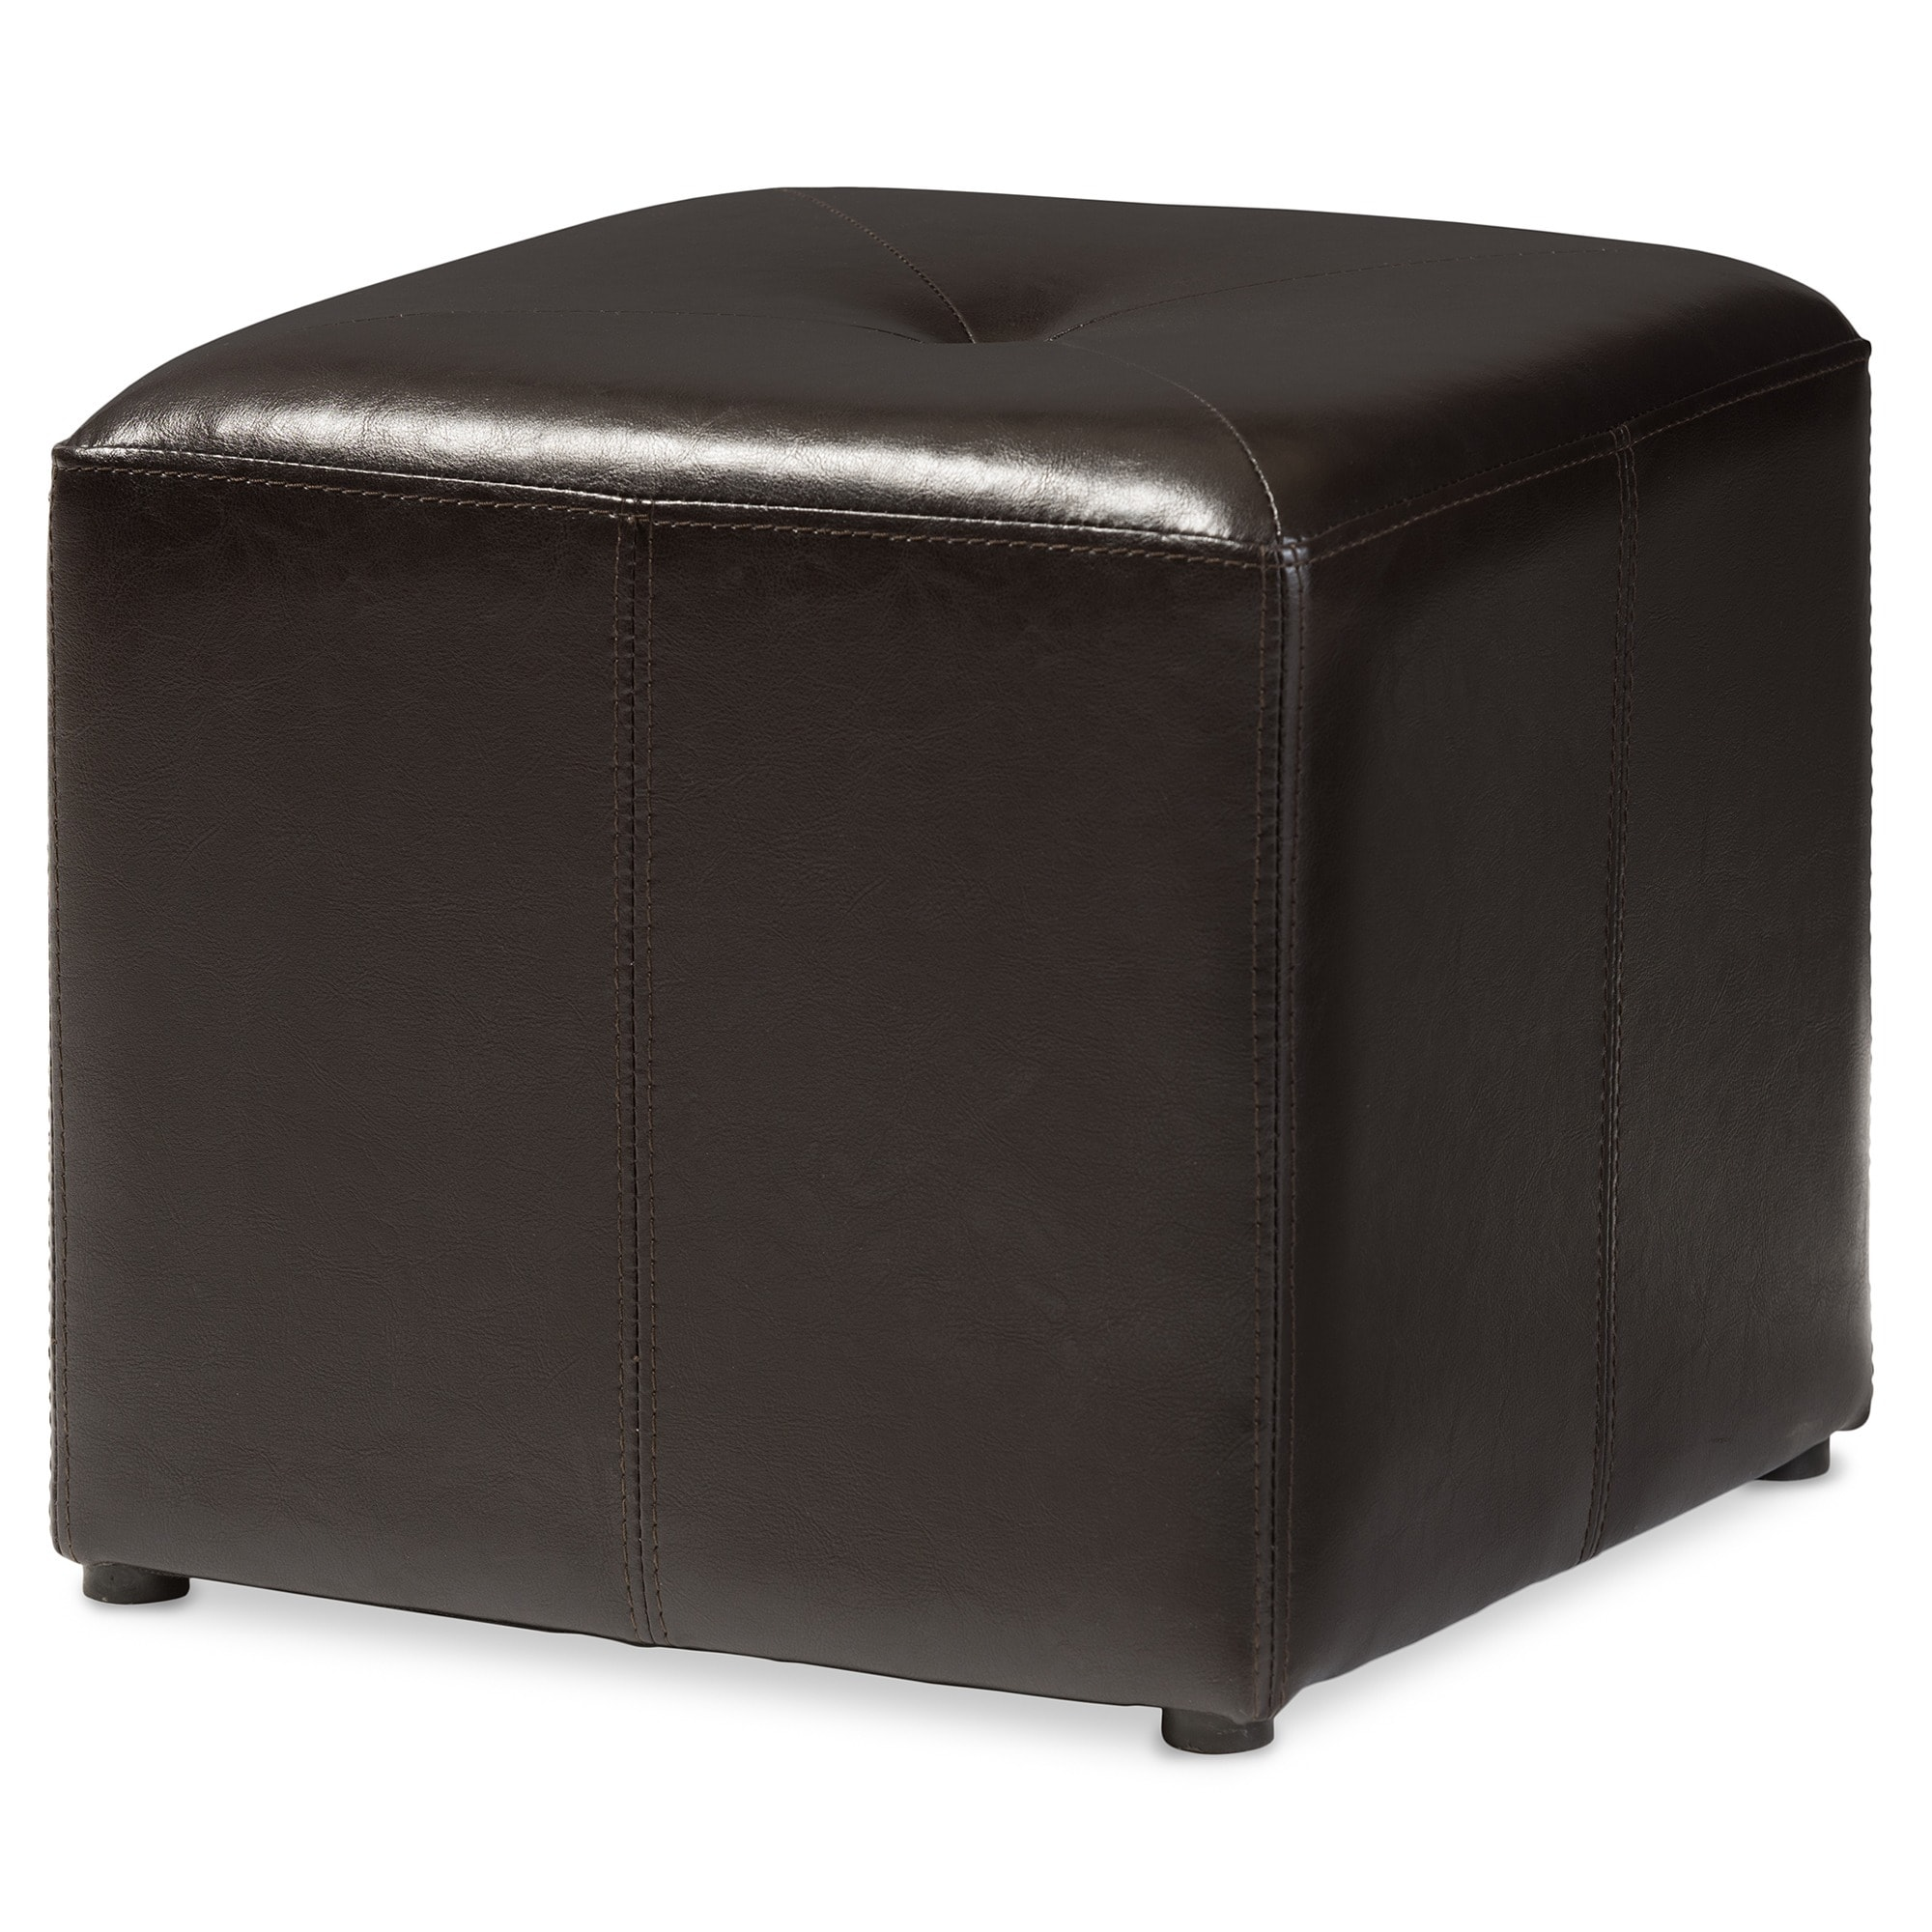 Shop dark brown bonded leather cube ottoman free shipping on orders over 45 overstock com 4092971